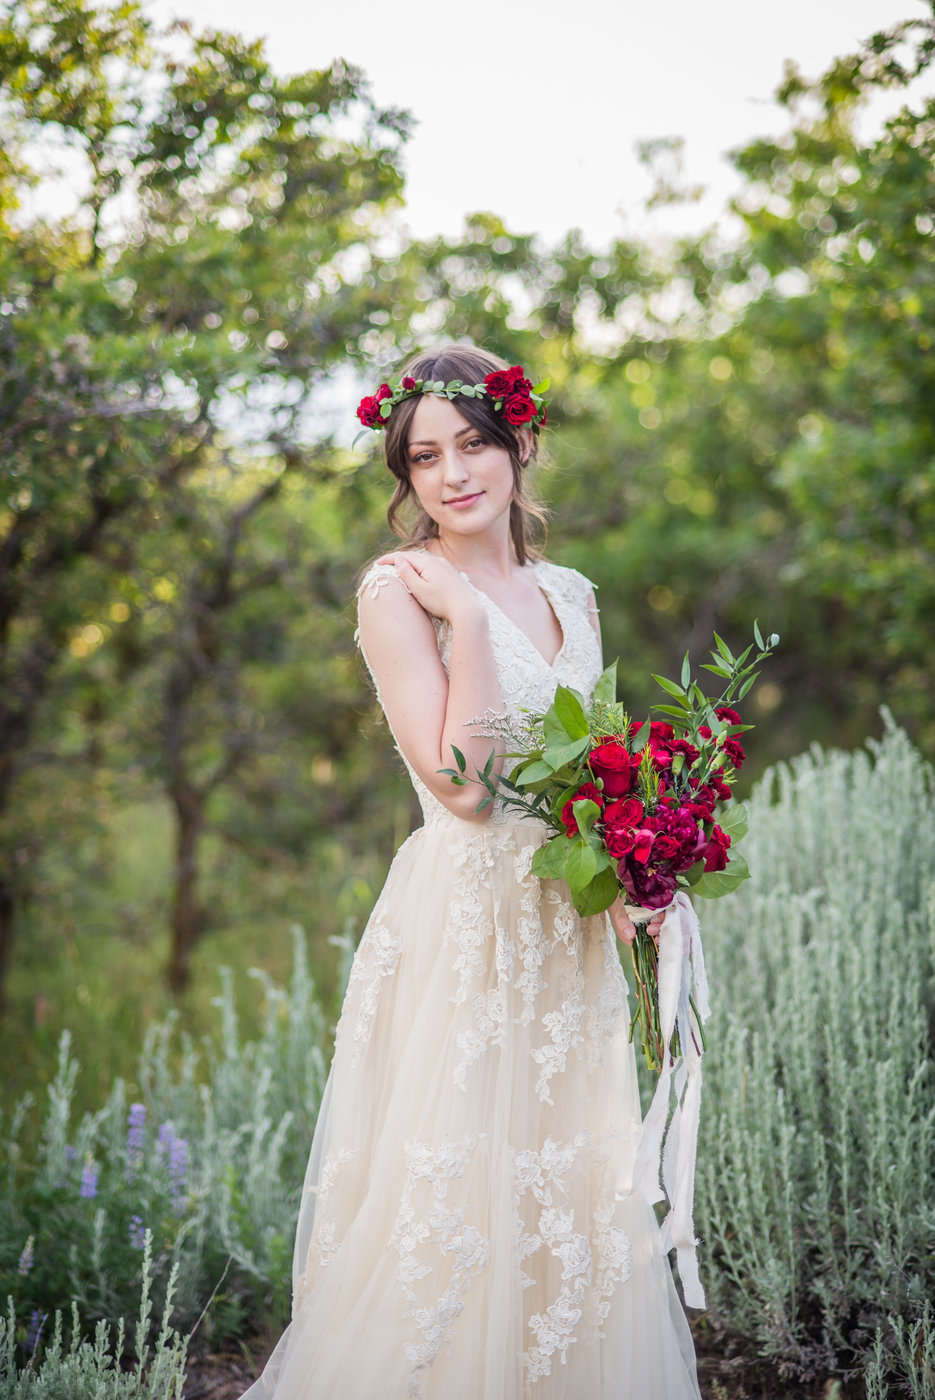 Intertwined Floral-Utah Photographer-Utah Wedding Photographer-Draper, Utah-Utah Bridals (7).jpg